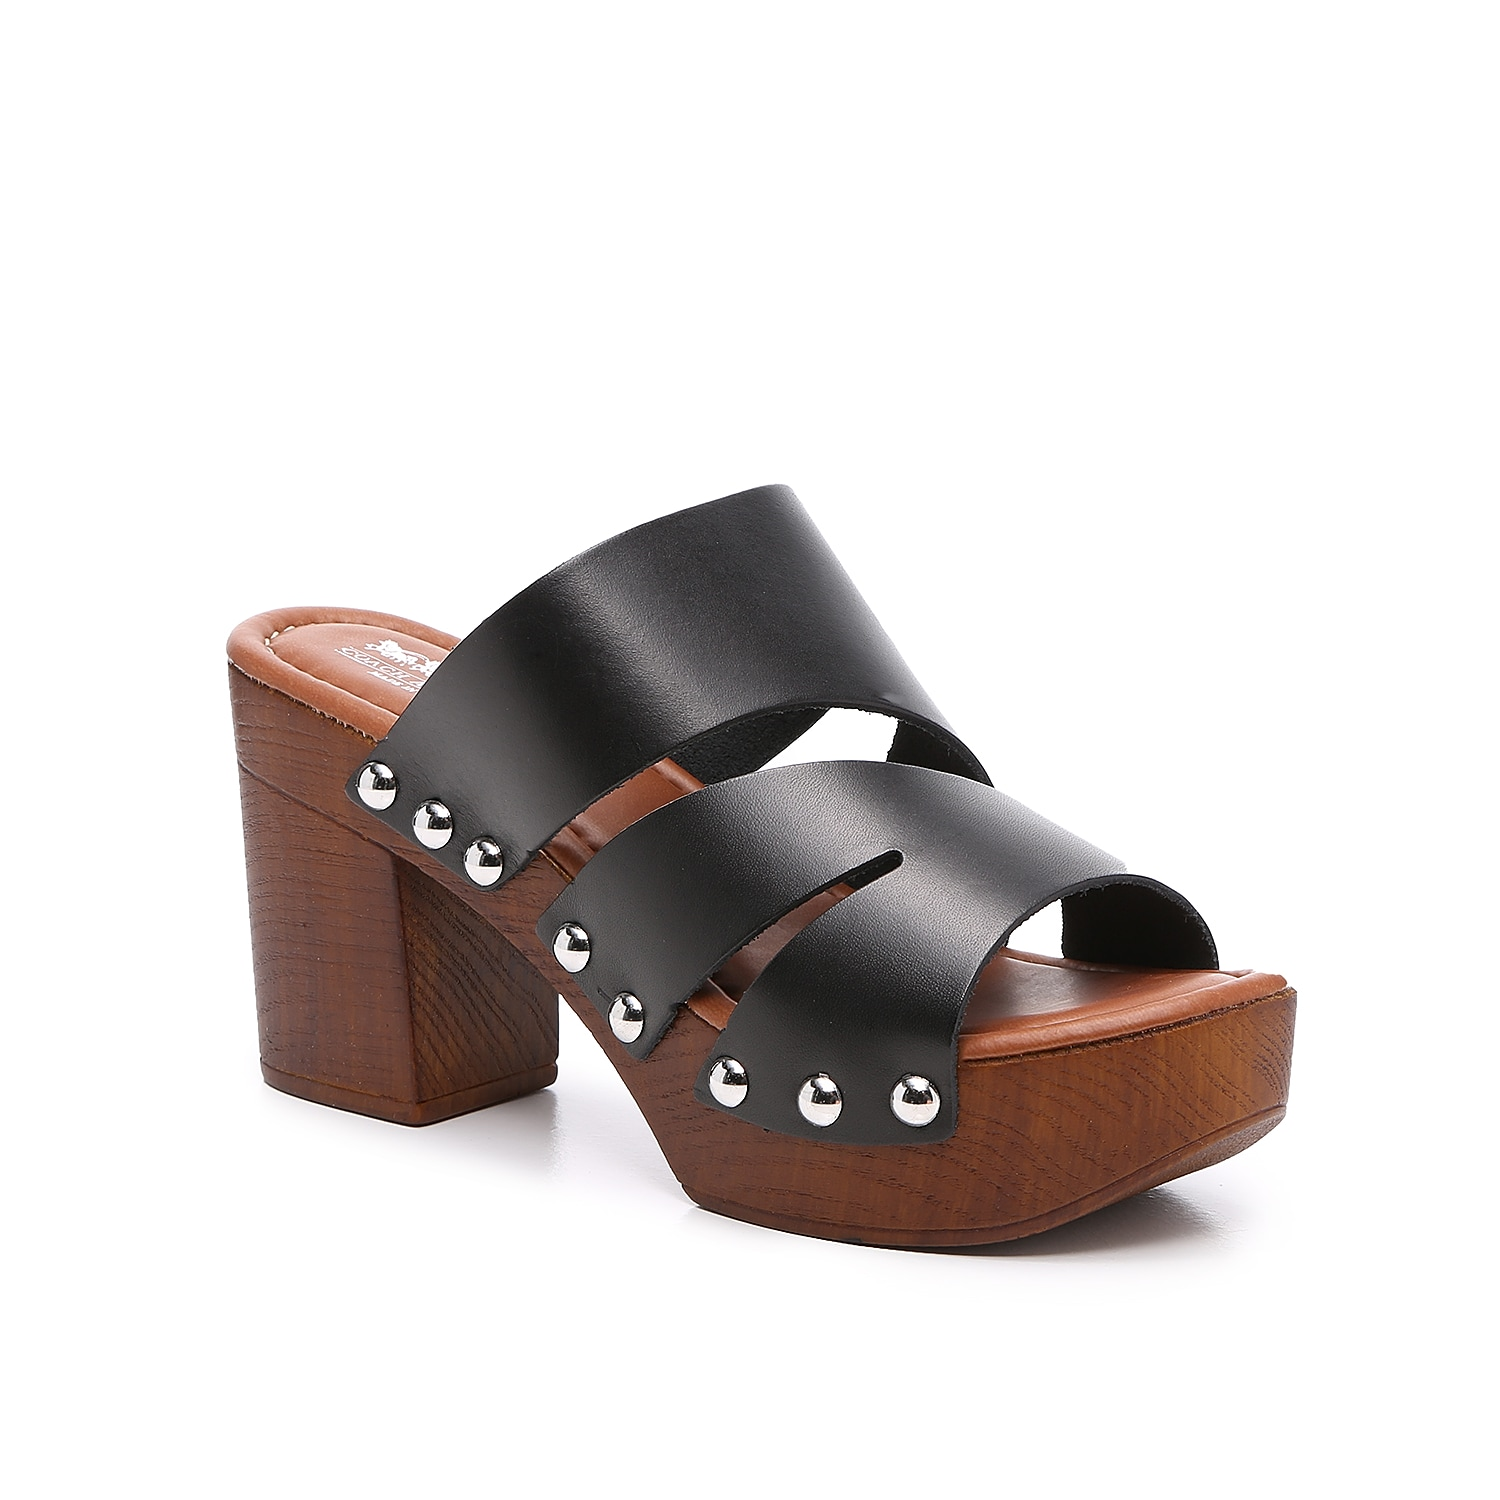 The Vero sandal from Coach and Four will give your look a retro vibe. With a chunky faux wood platform and studded accents, this pair will complement wide-leg jeans or long skirts!